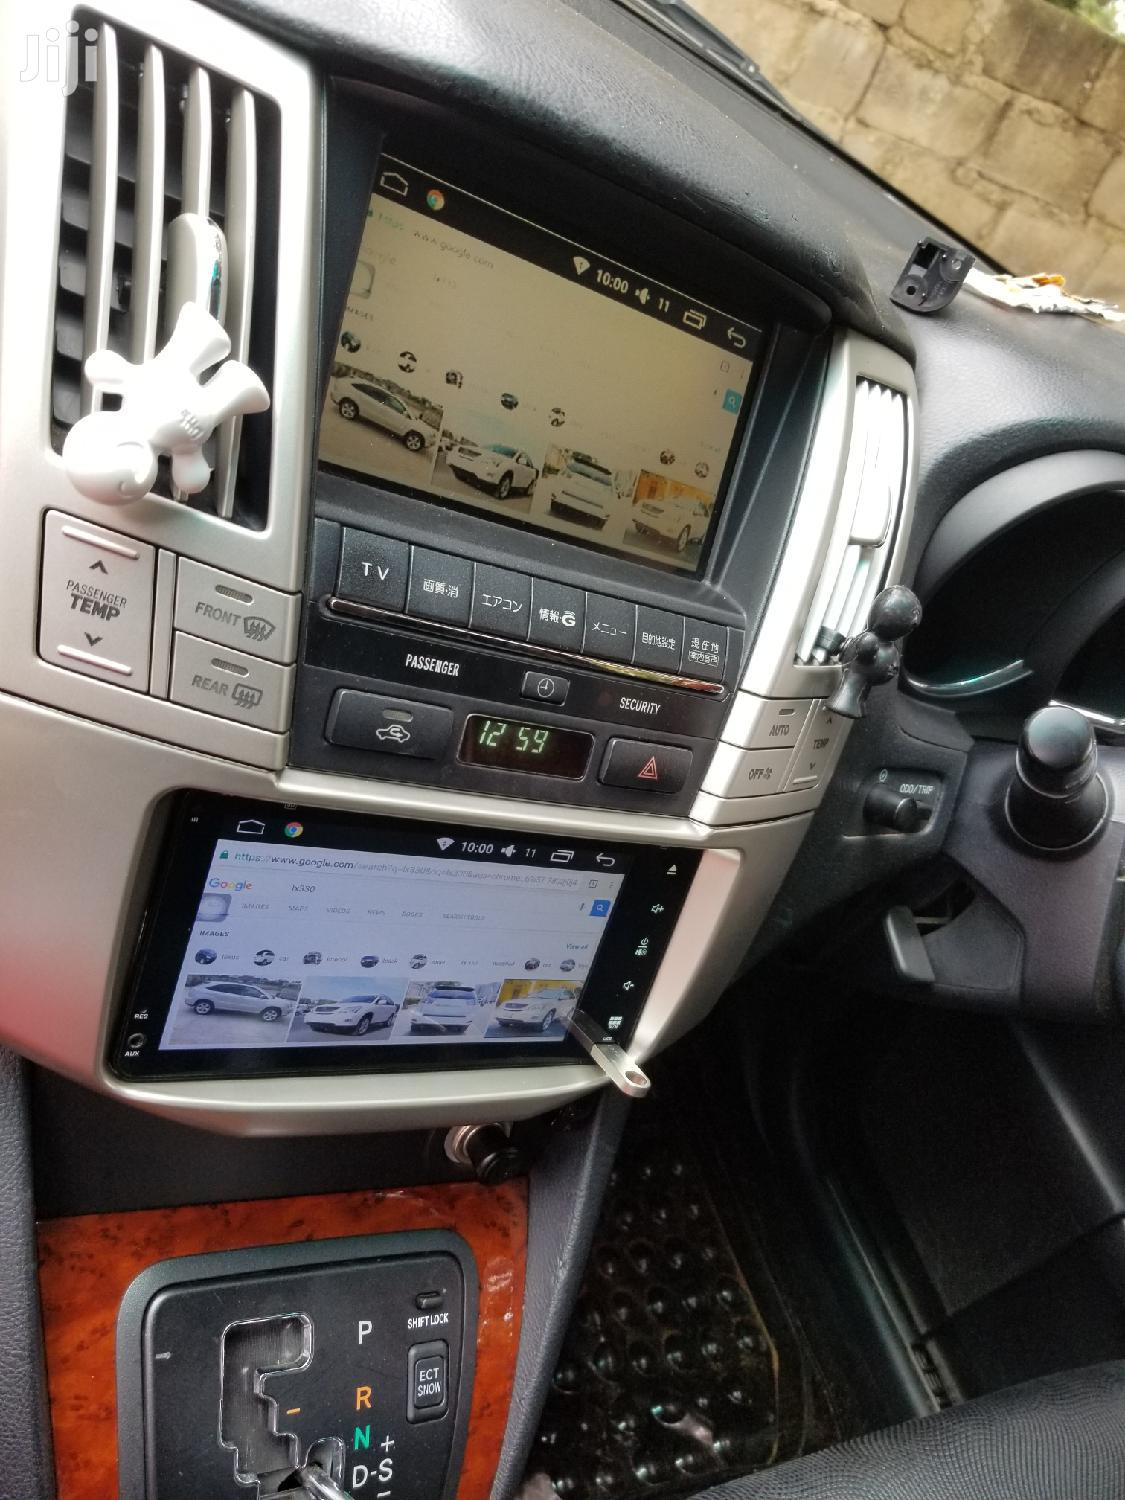 Car Radio Smart Android For Harrier Kawundu